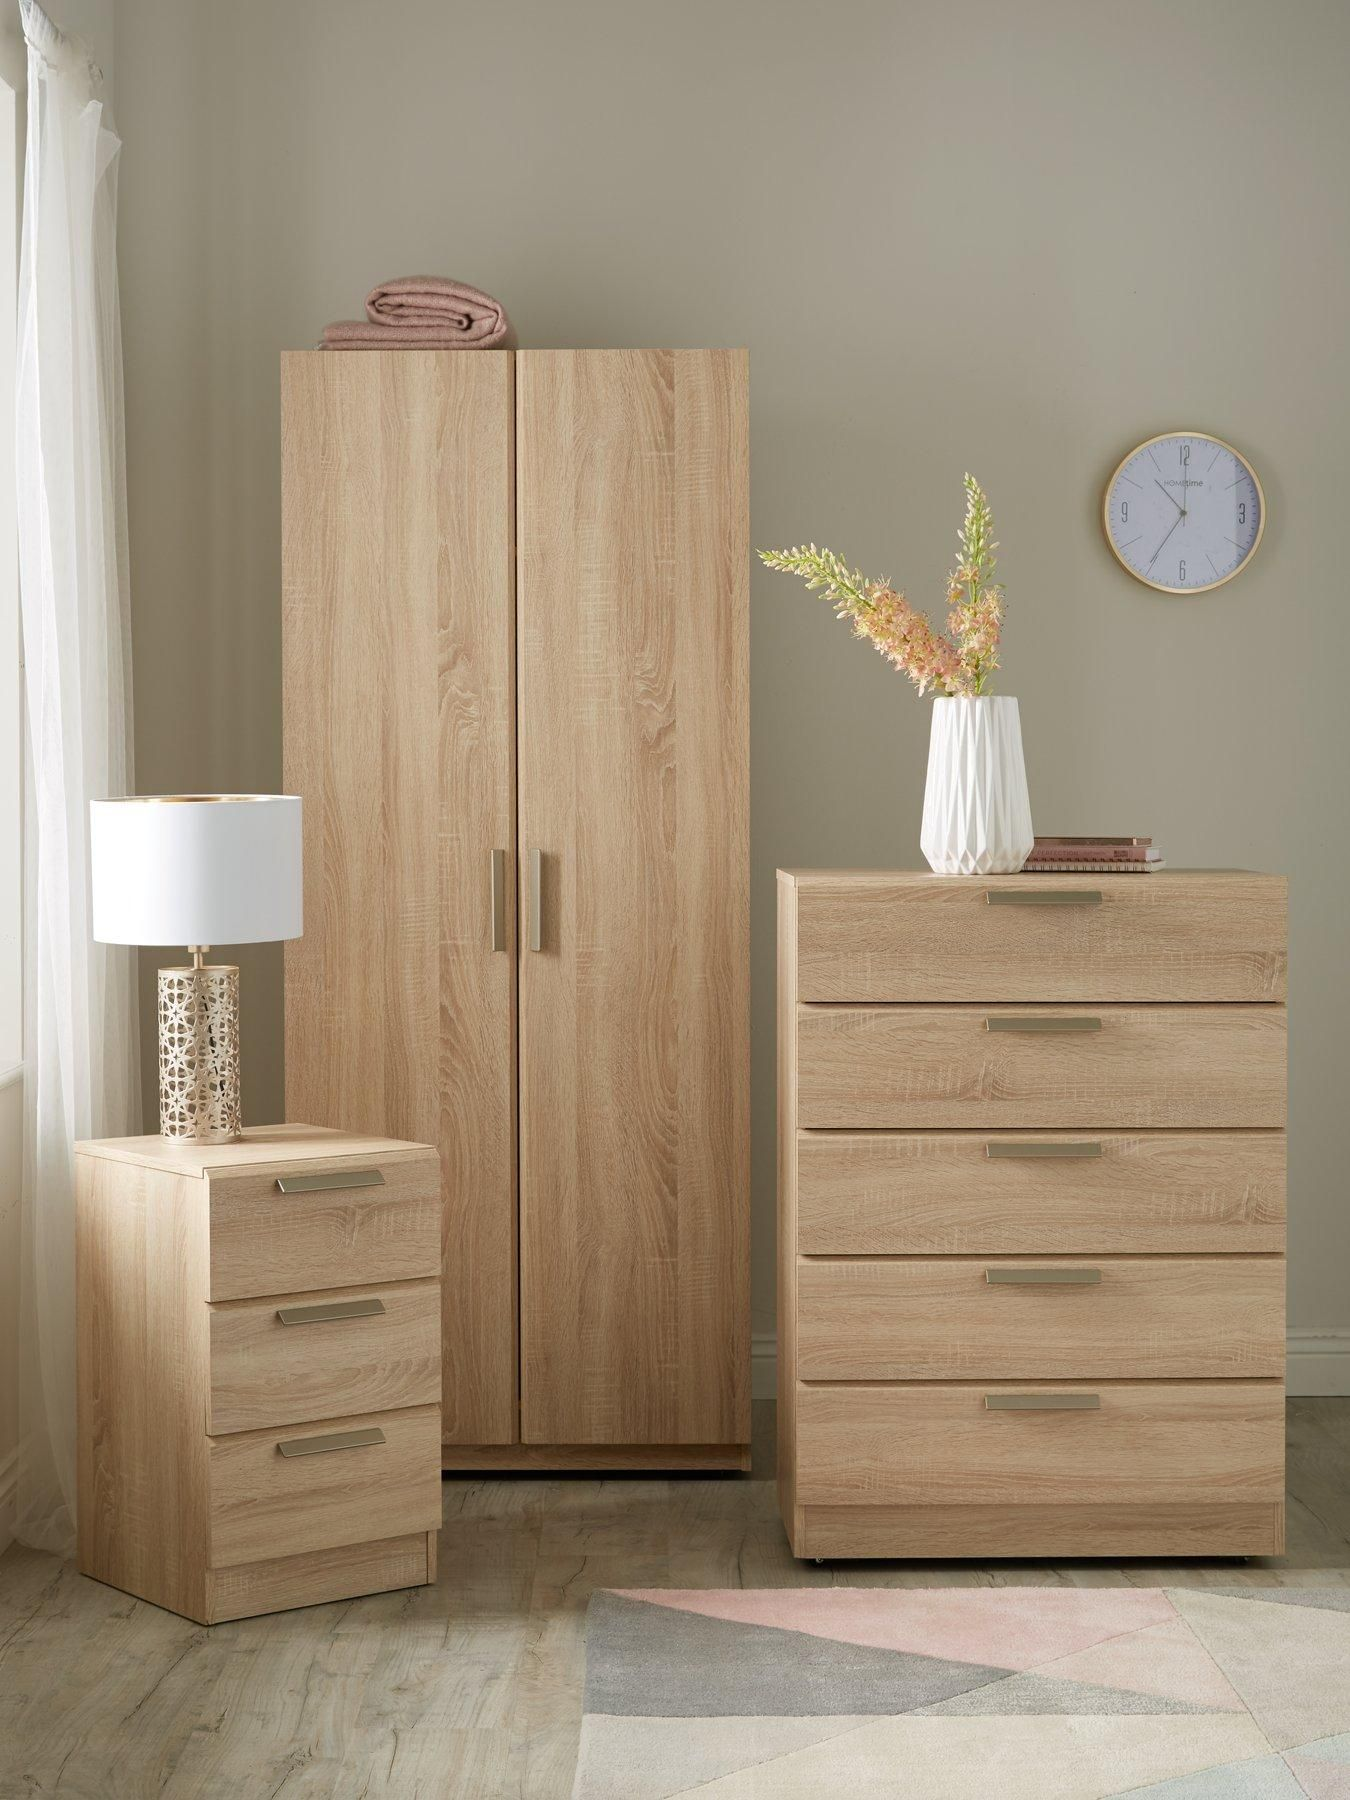 Very Womens Mens And Kids Fashion Furniture Electricals More Tall Cabinet Storage Hanging Rail Furniture